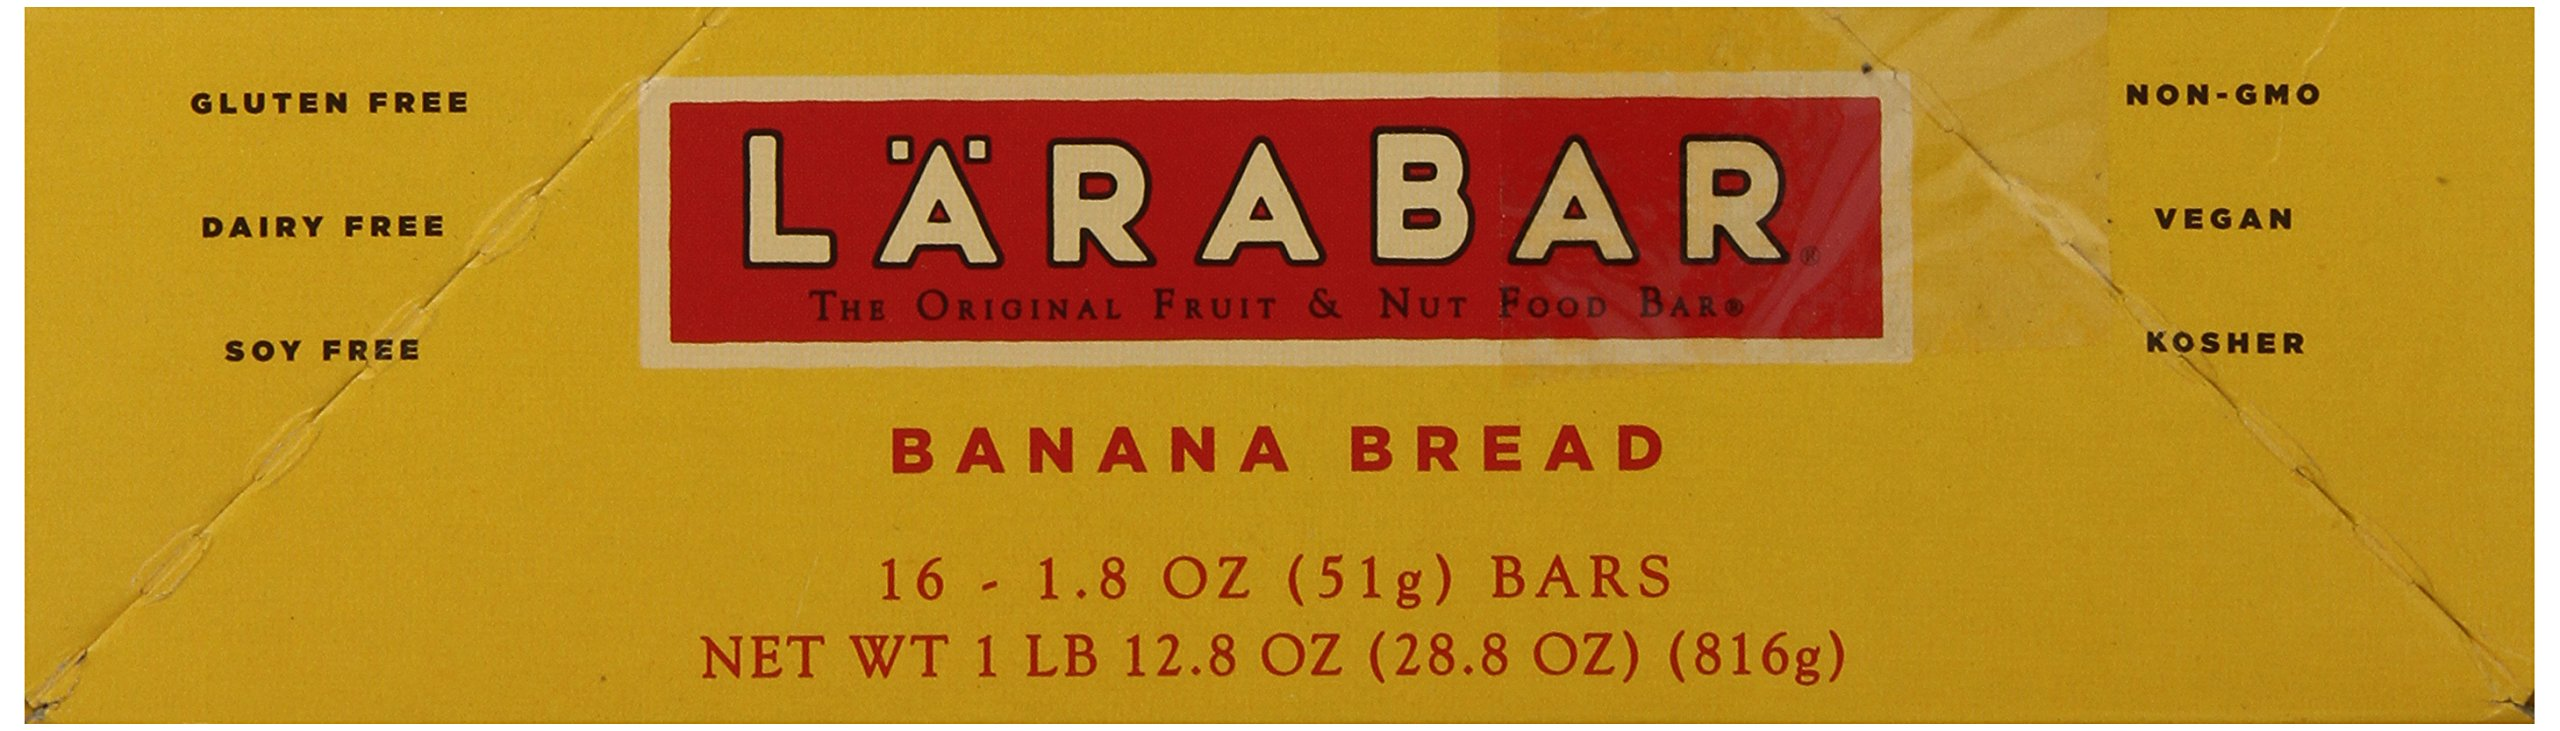 Larabar Gluten Free Bar, Banana Bread, 1.8 oz Bars (16 Count), Whole Food Gluten Free Bars, Dairy Free Snacks by LÄRABAR (Image #8)